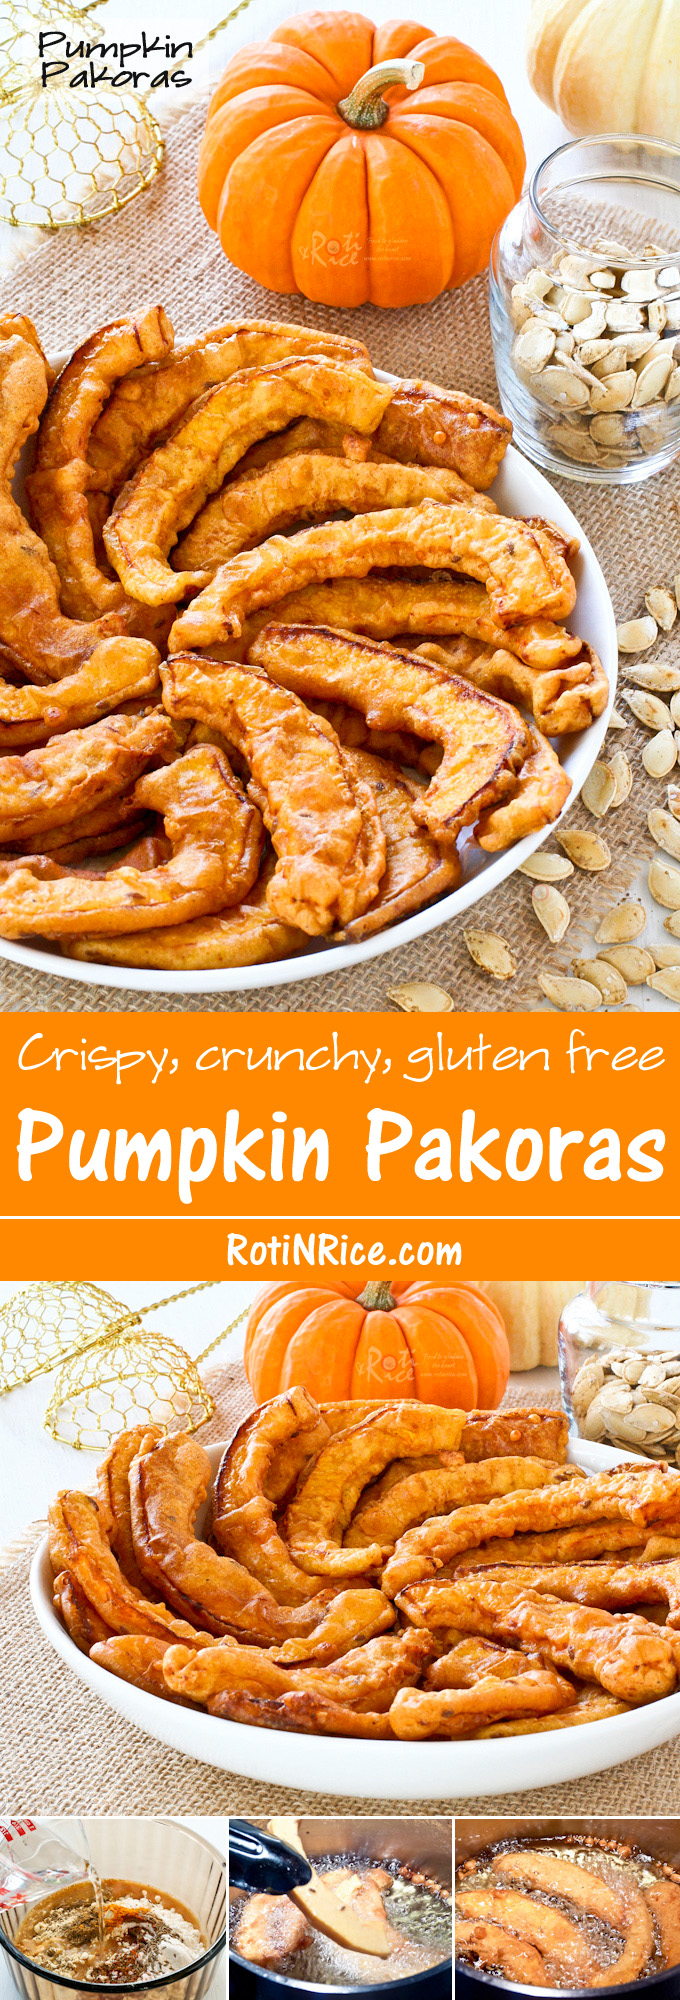 Golden Pumpkin Pakoras coated with chickpea flour, garam masala, chili powder, ground turmeric, and cumin seeds. They are crispy crunchy and gluten free. | RotiNRice.com